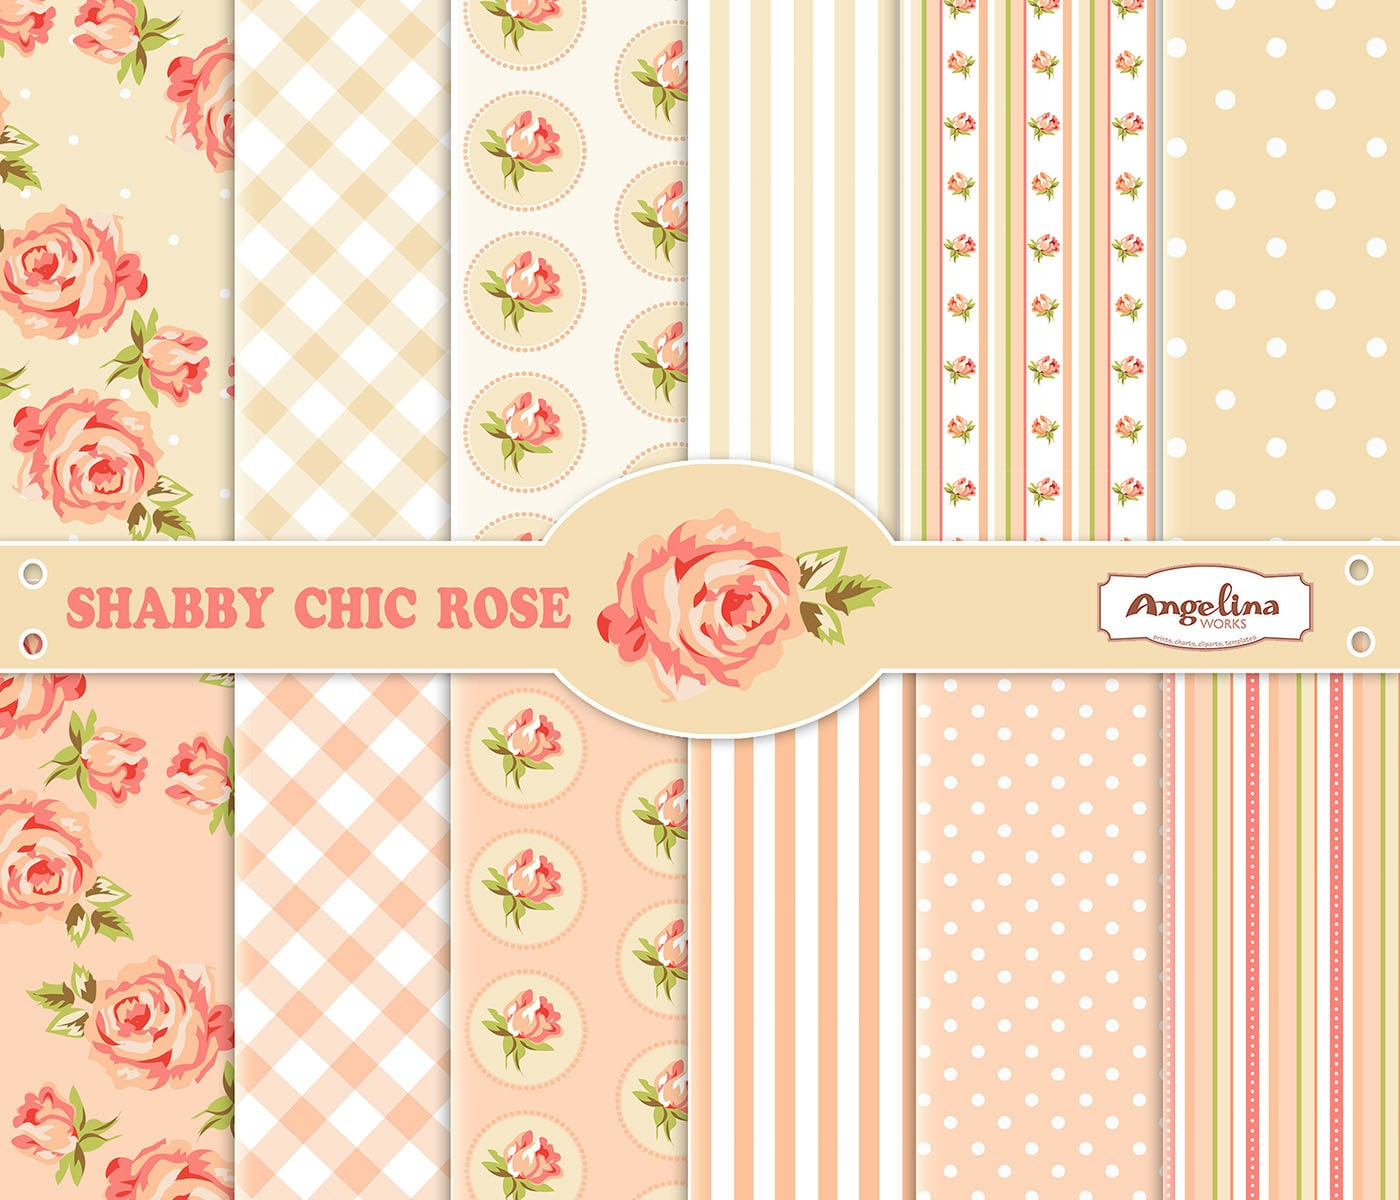 12 Shabby Chic Rose Digital Scrapbook Paper pack by ...